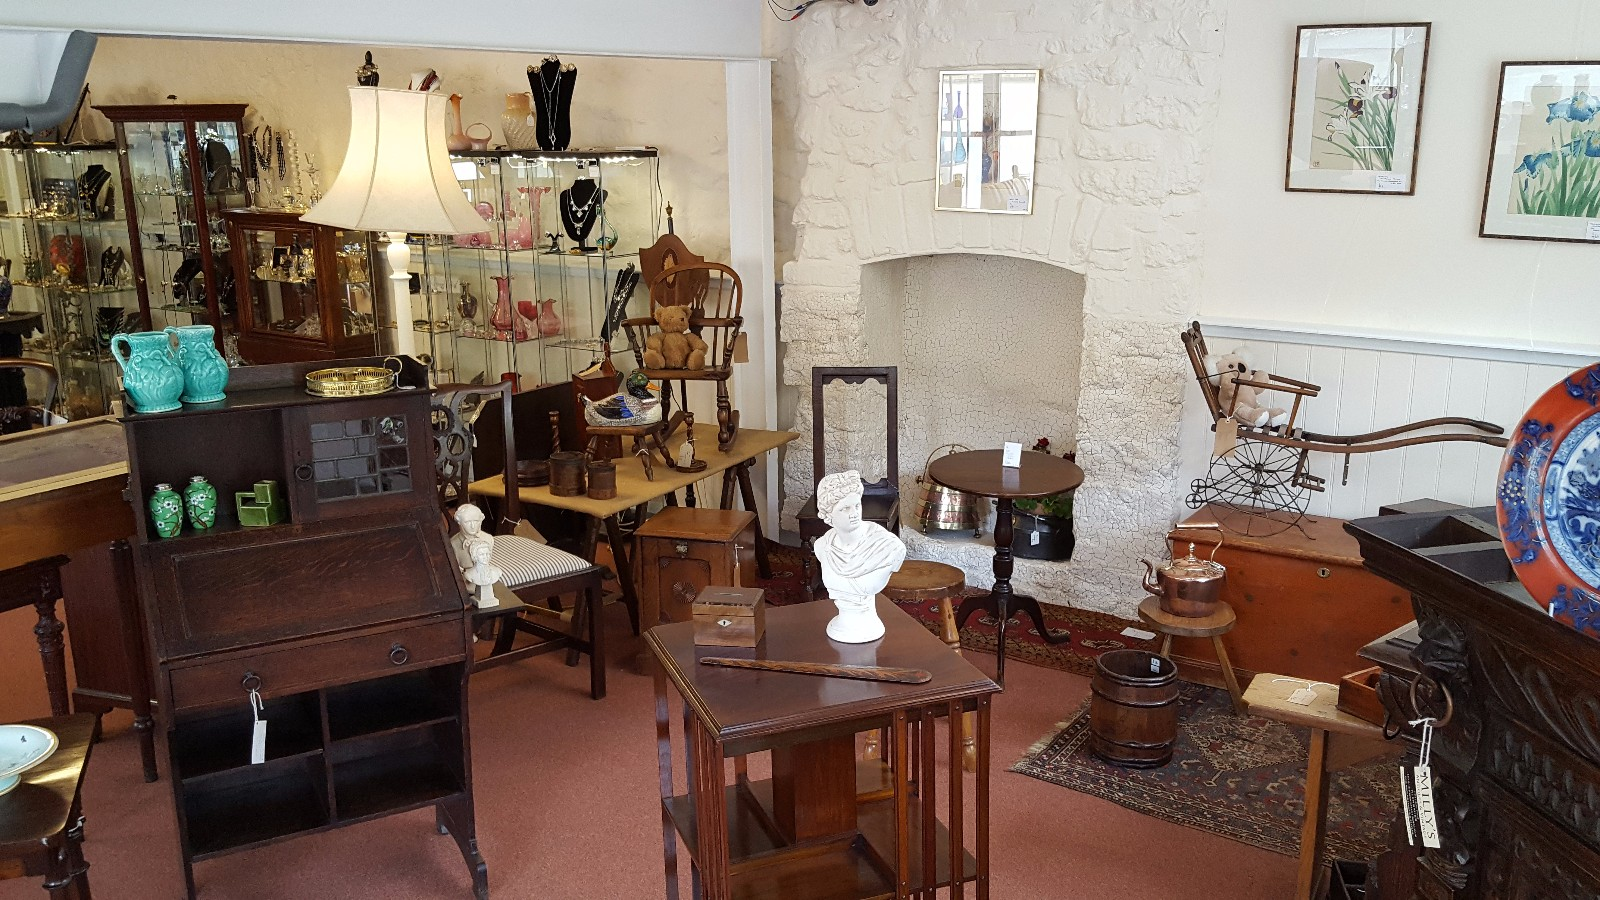 Milly's Antiques image (4 of 4)